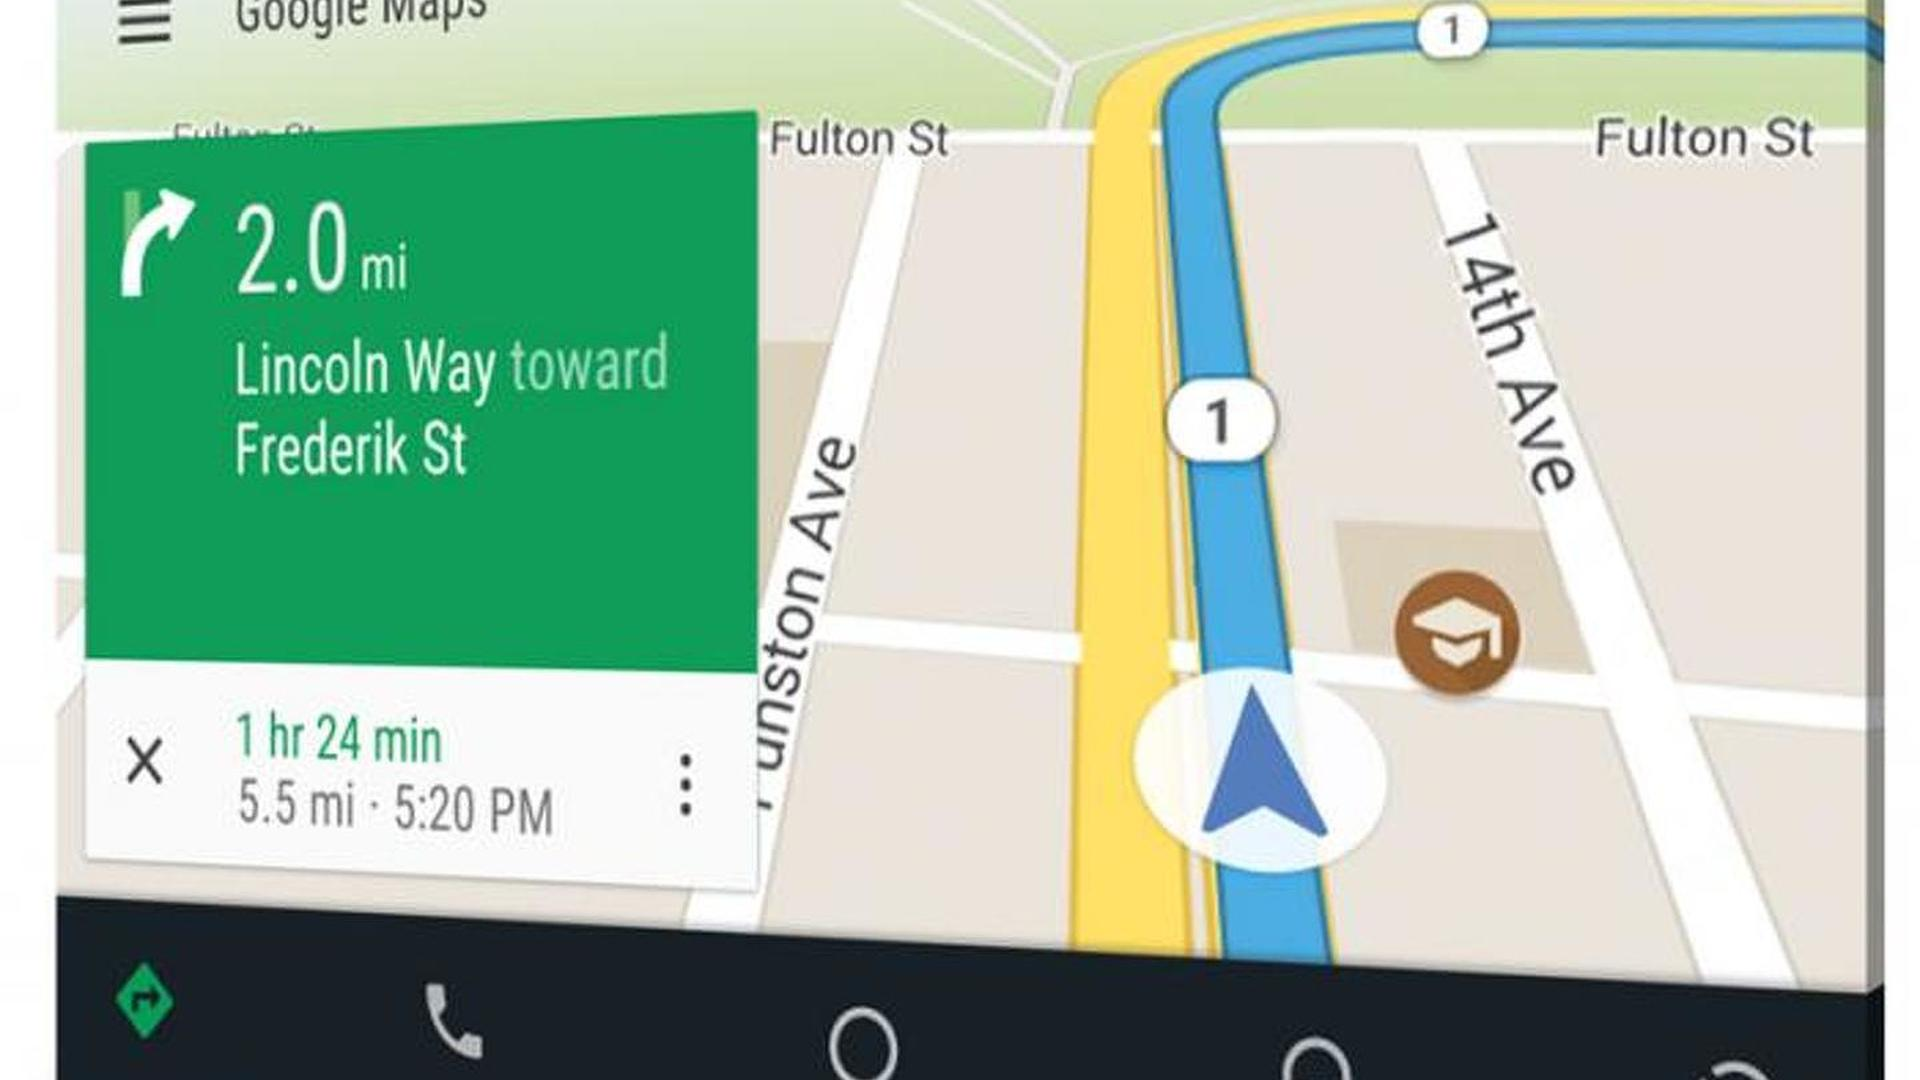 Google is reportedly working on a new Android infotainment system